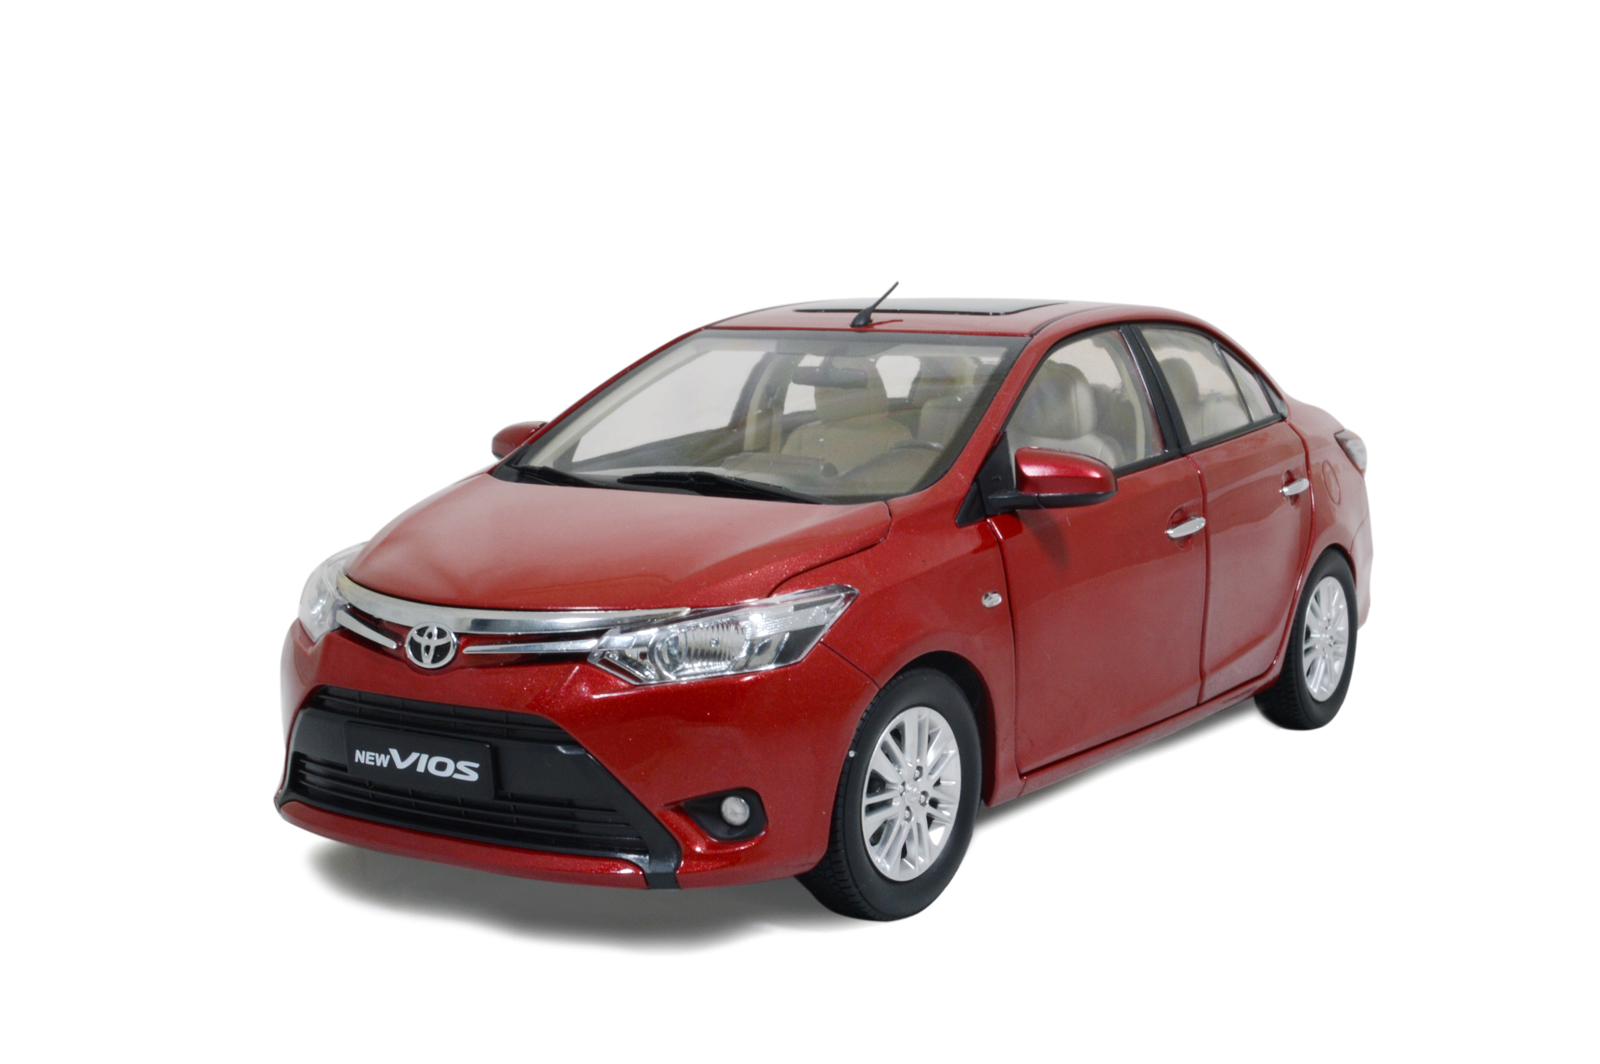 Toyota Vios 2014 1/18 Scale Diecast Model Car Wholesale